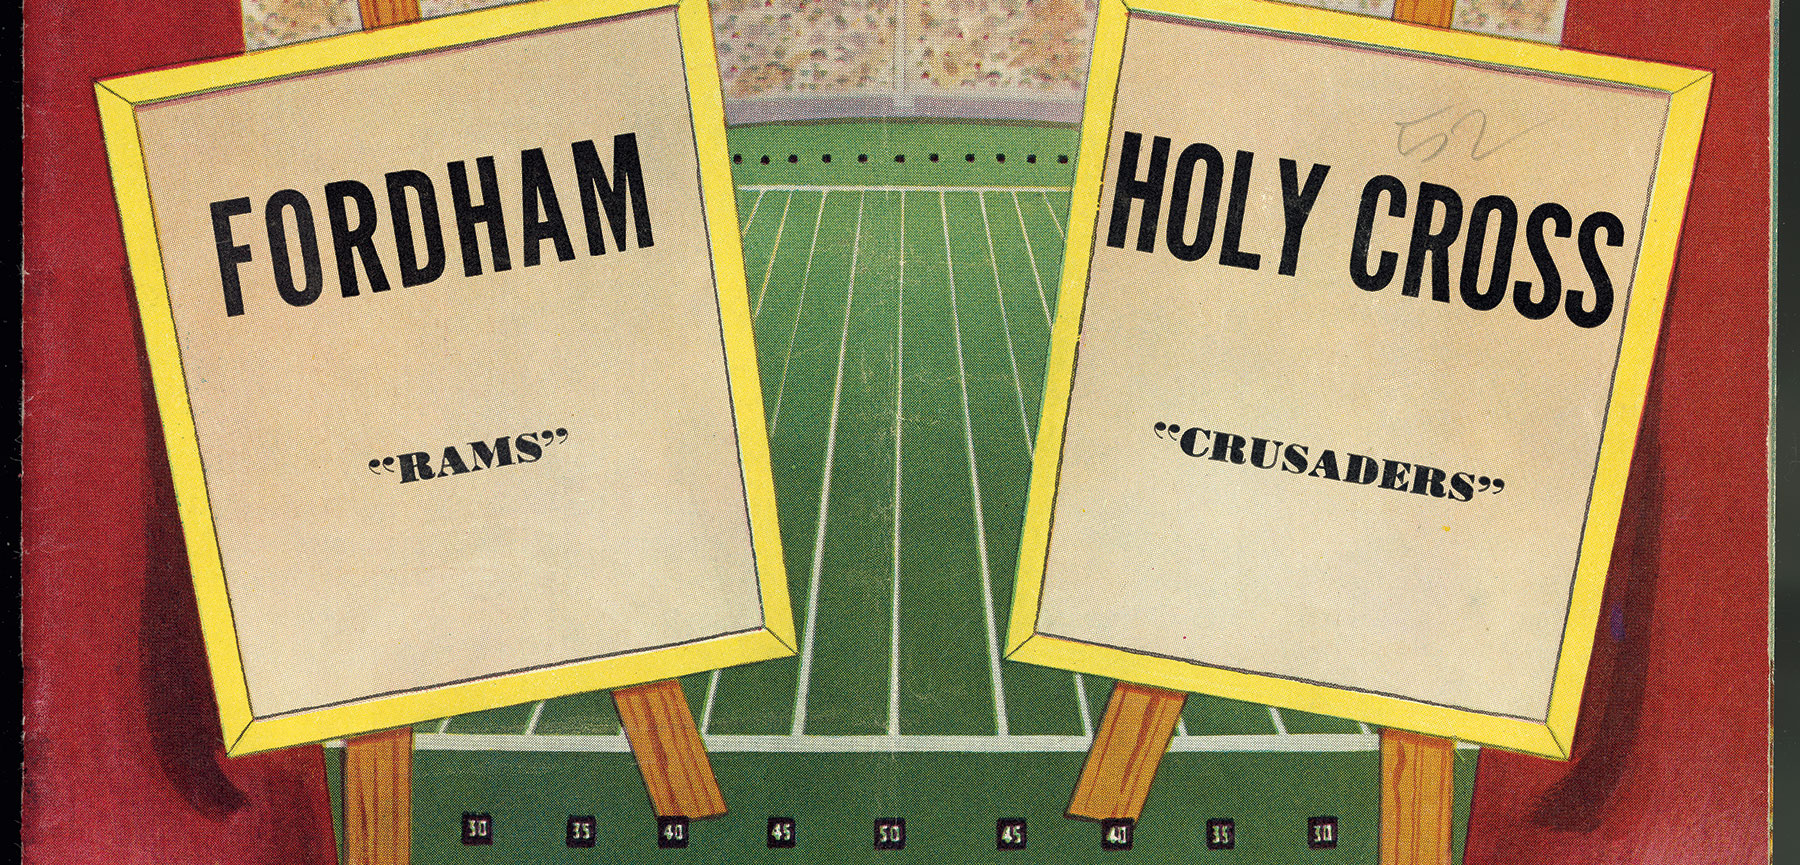 Fordham-Holy Cross Football Rivalry: A Homecoming Preview